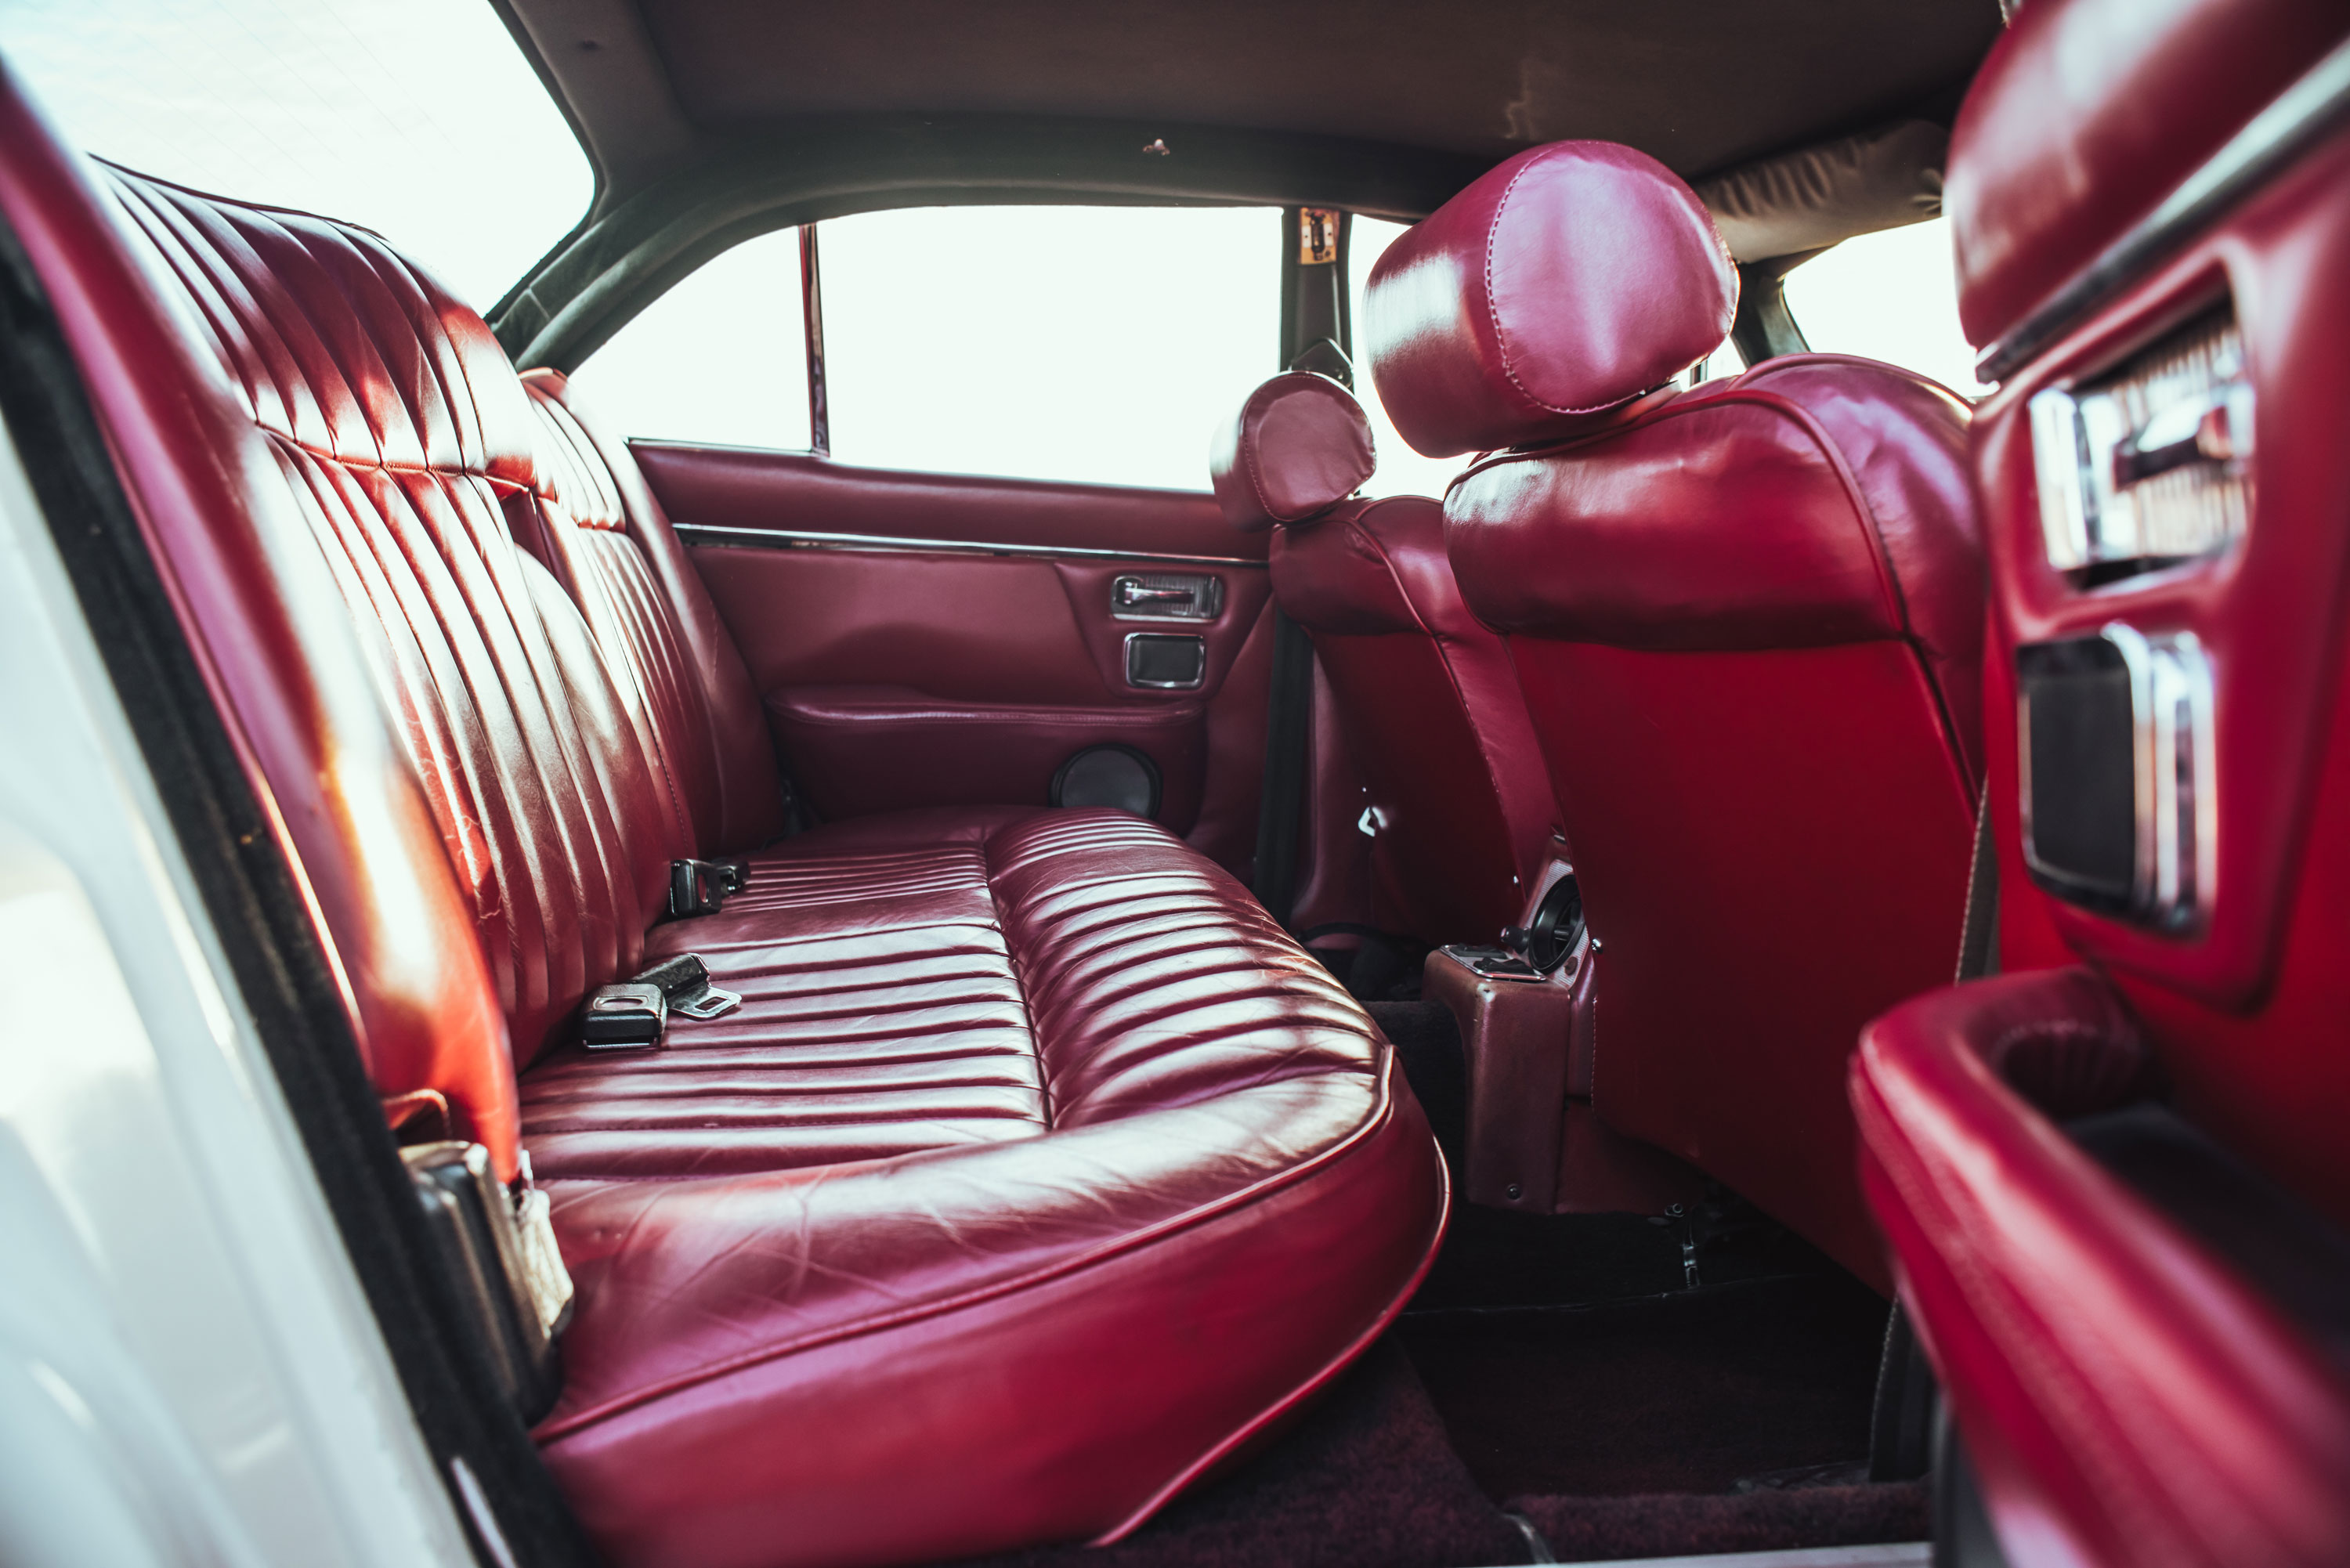 1974 Jaguar XJ6 rear seats